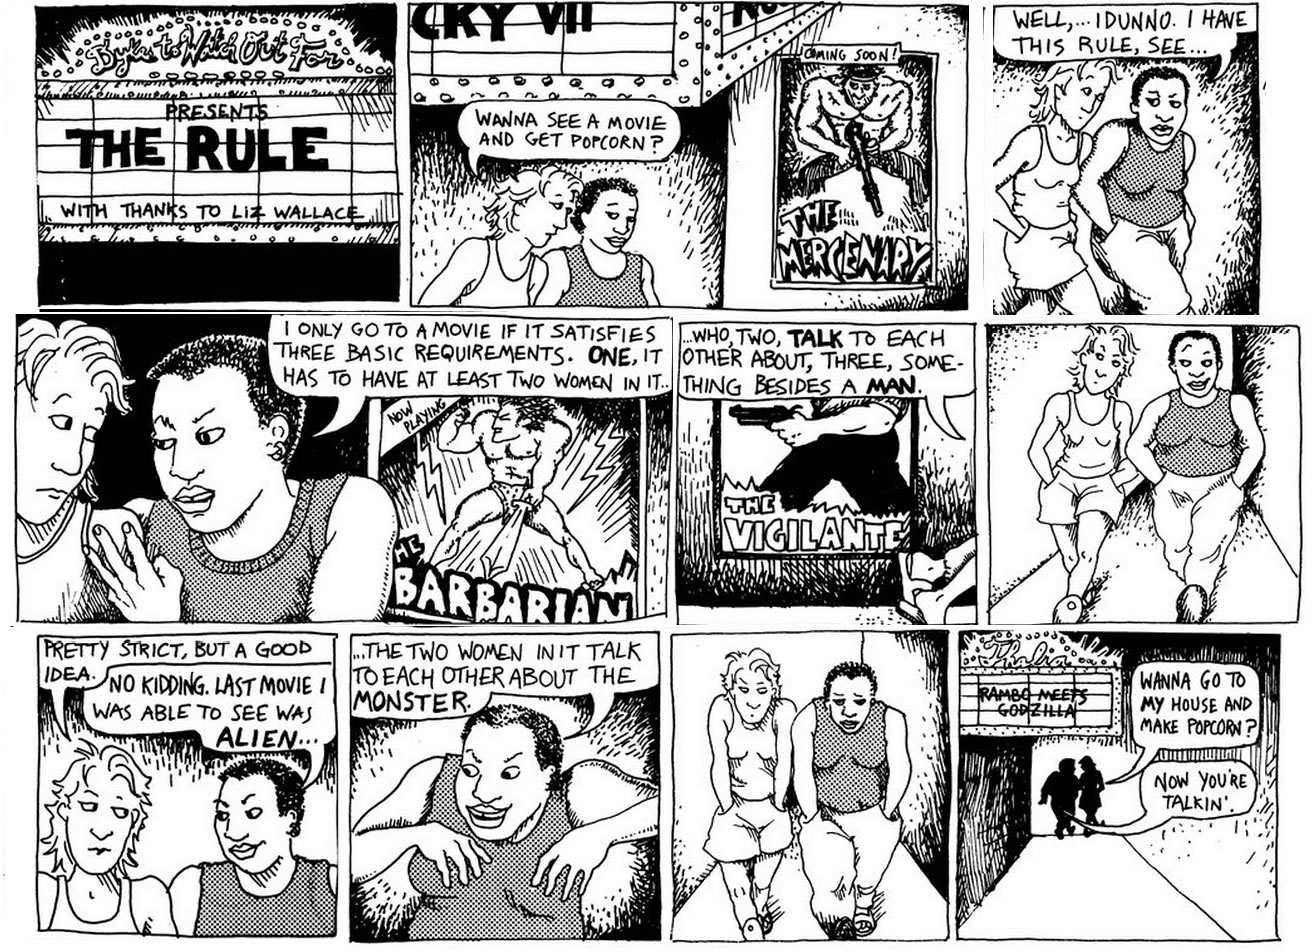 bechdel test full comic